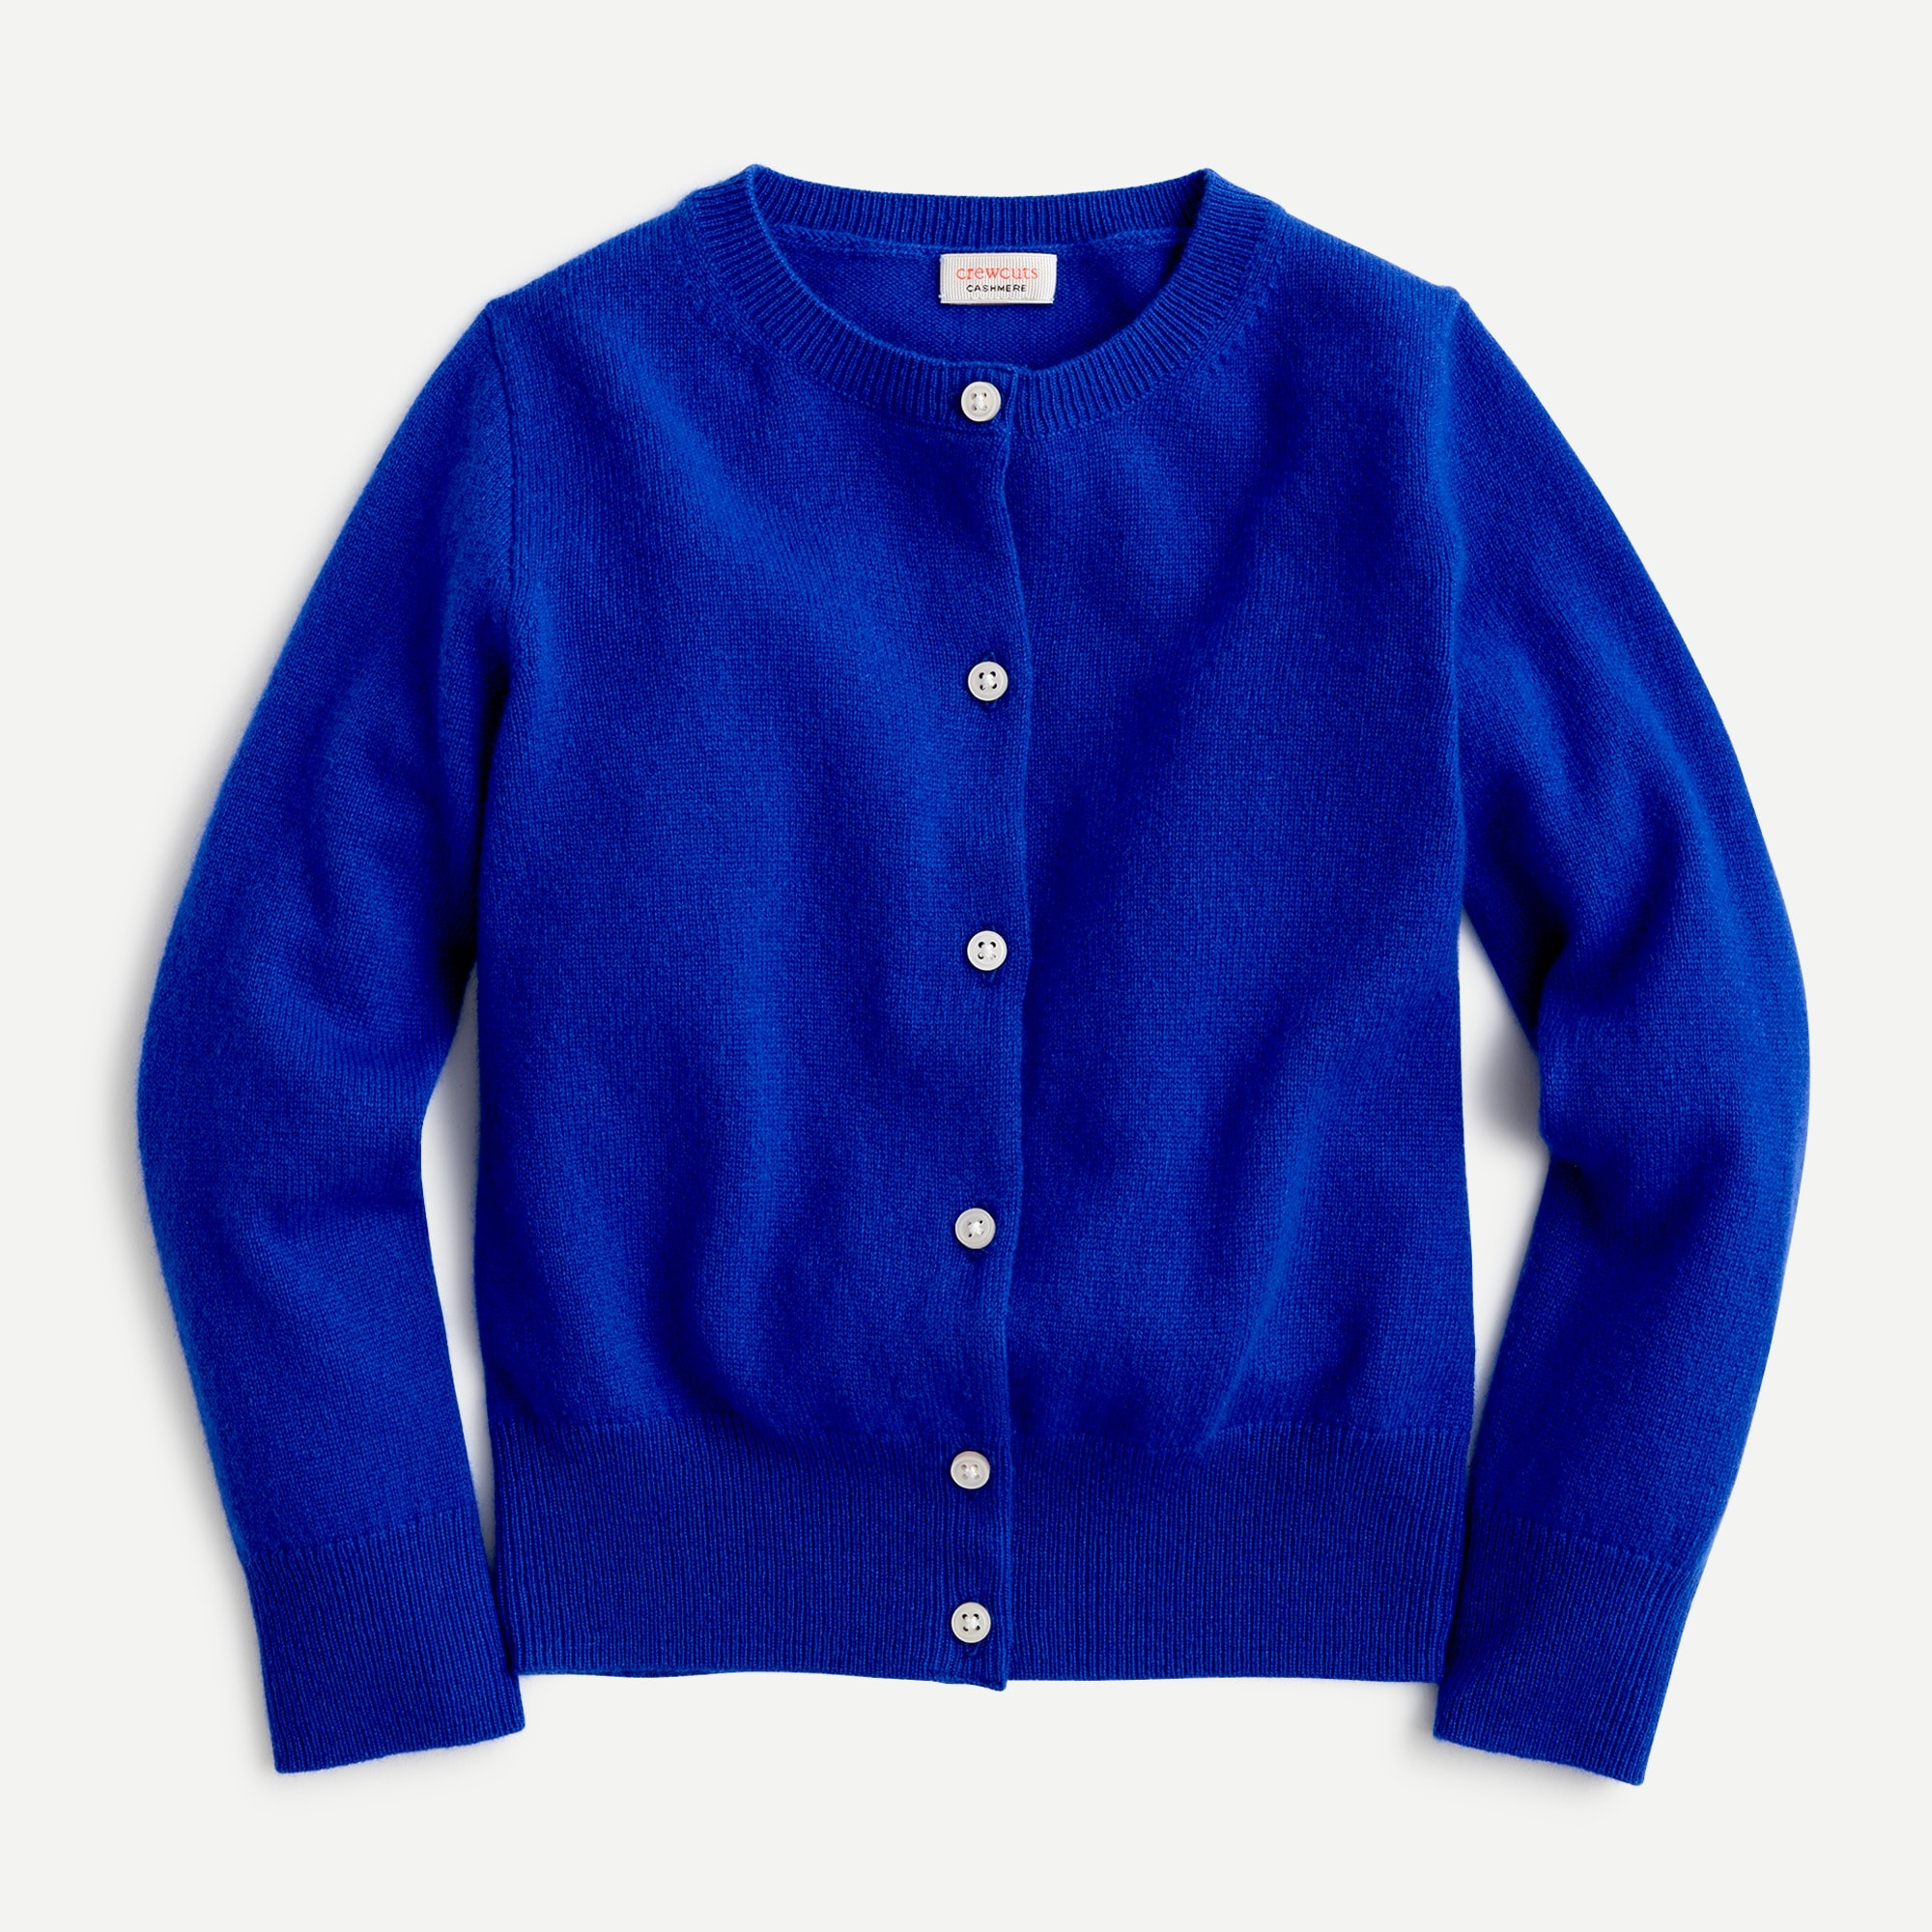 girls Girls' cashmere cardigan sweater